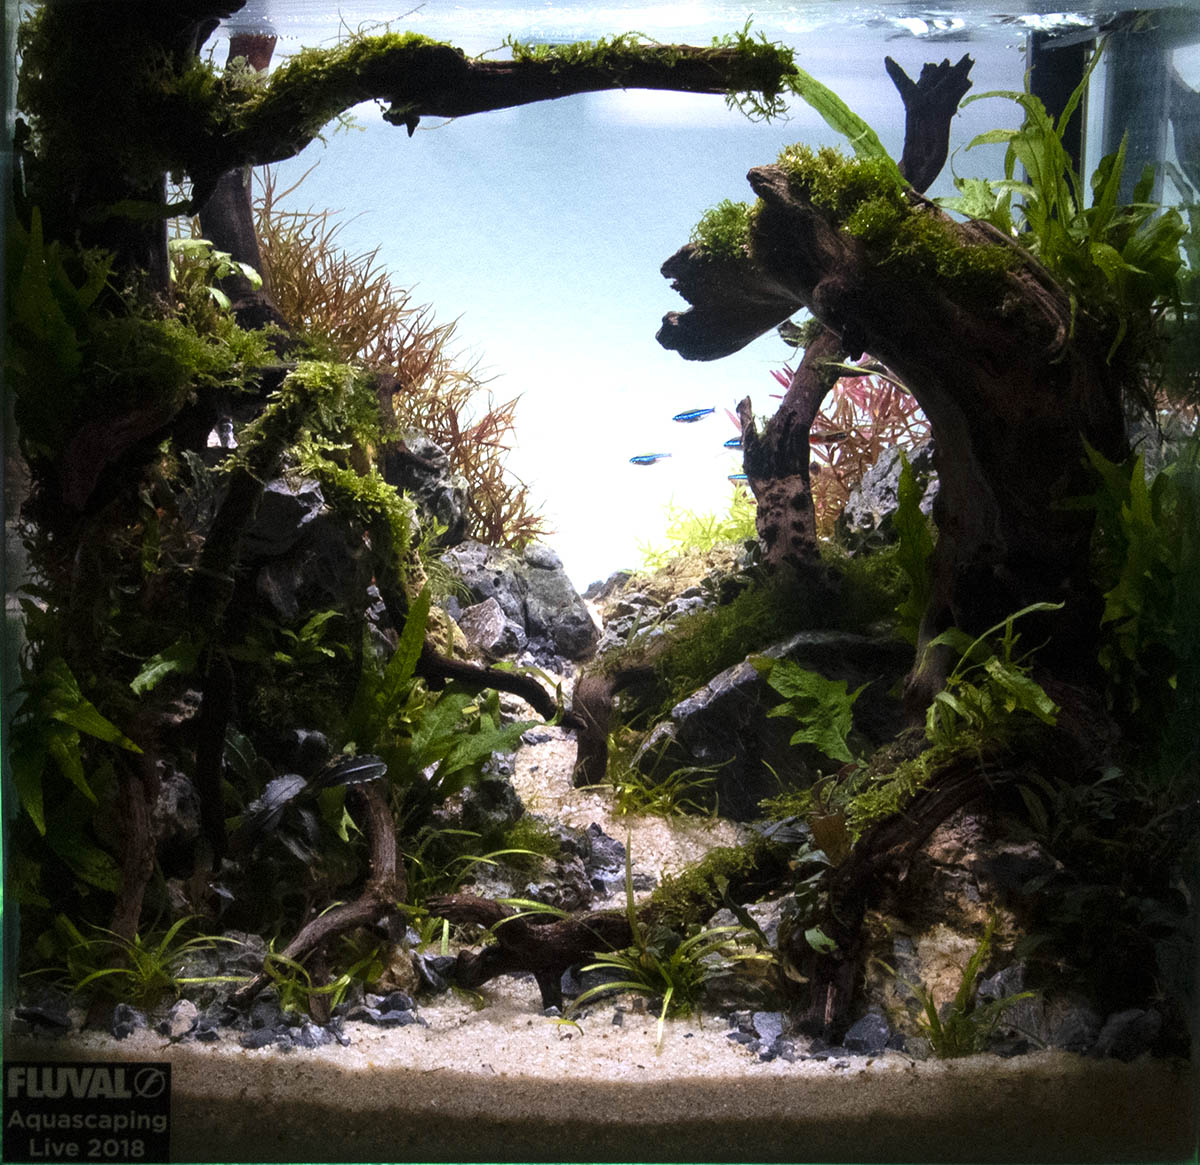 Aquascape_5008